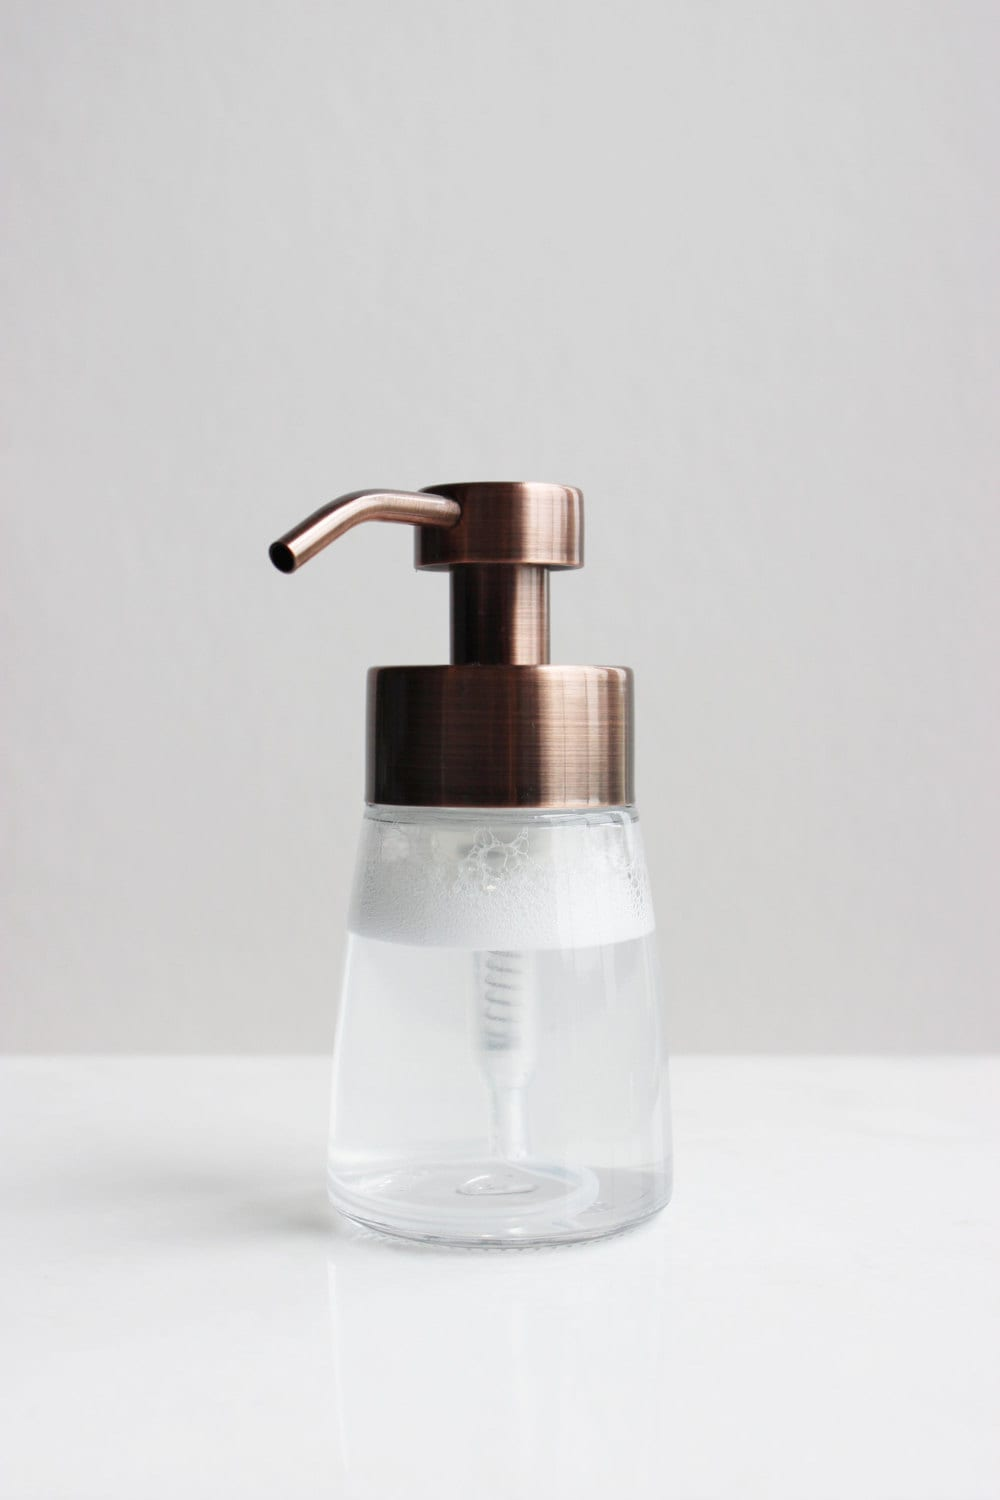 Small Glass Foaming Soap Dispenser With Copper Metal Pump